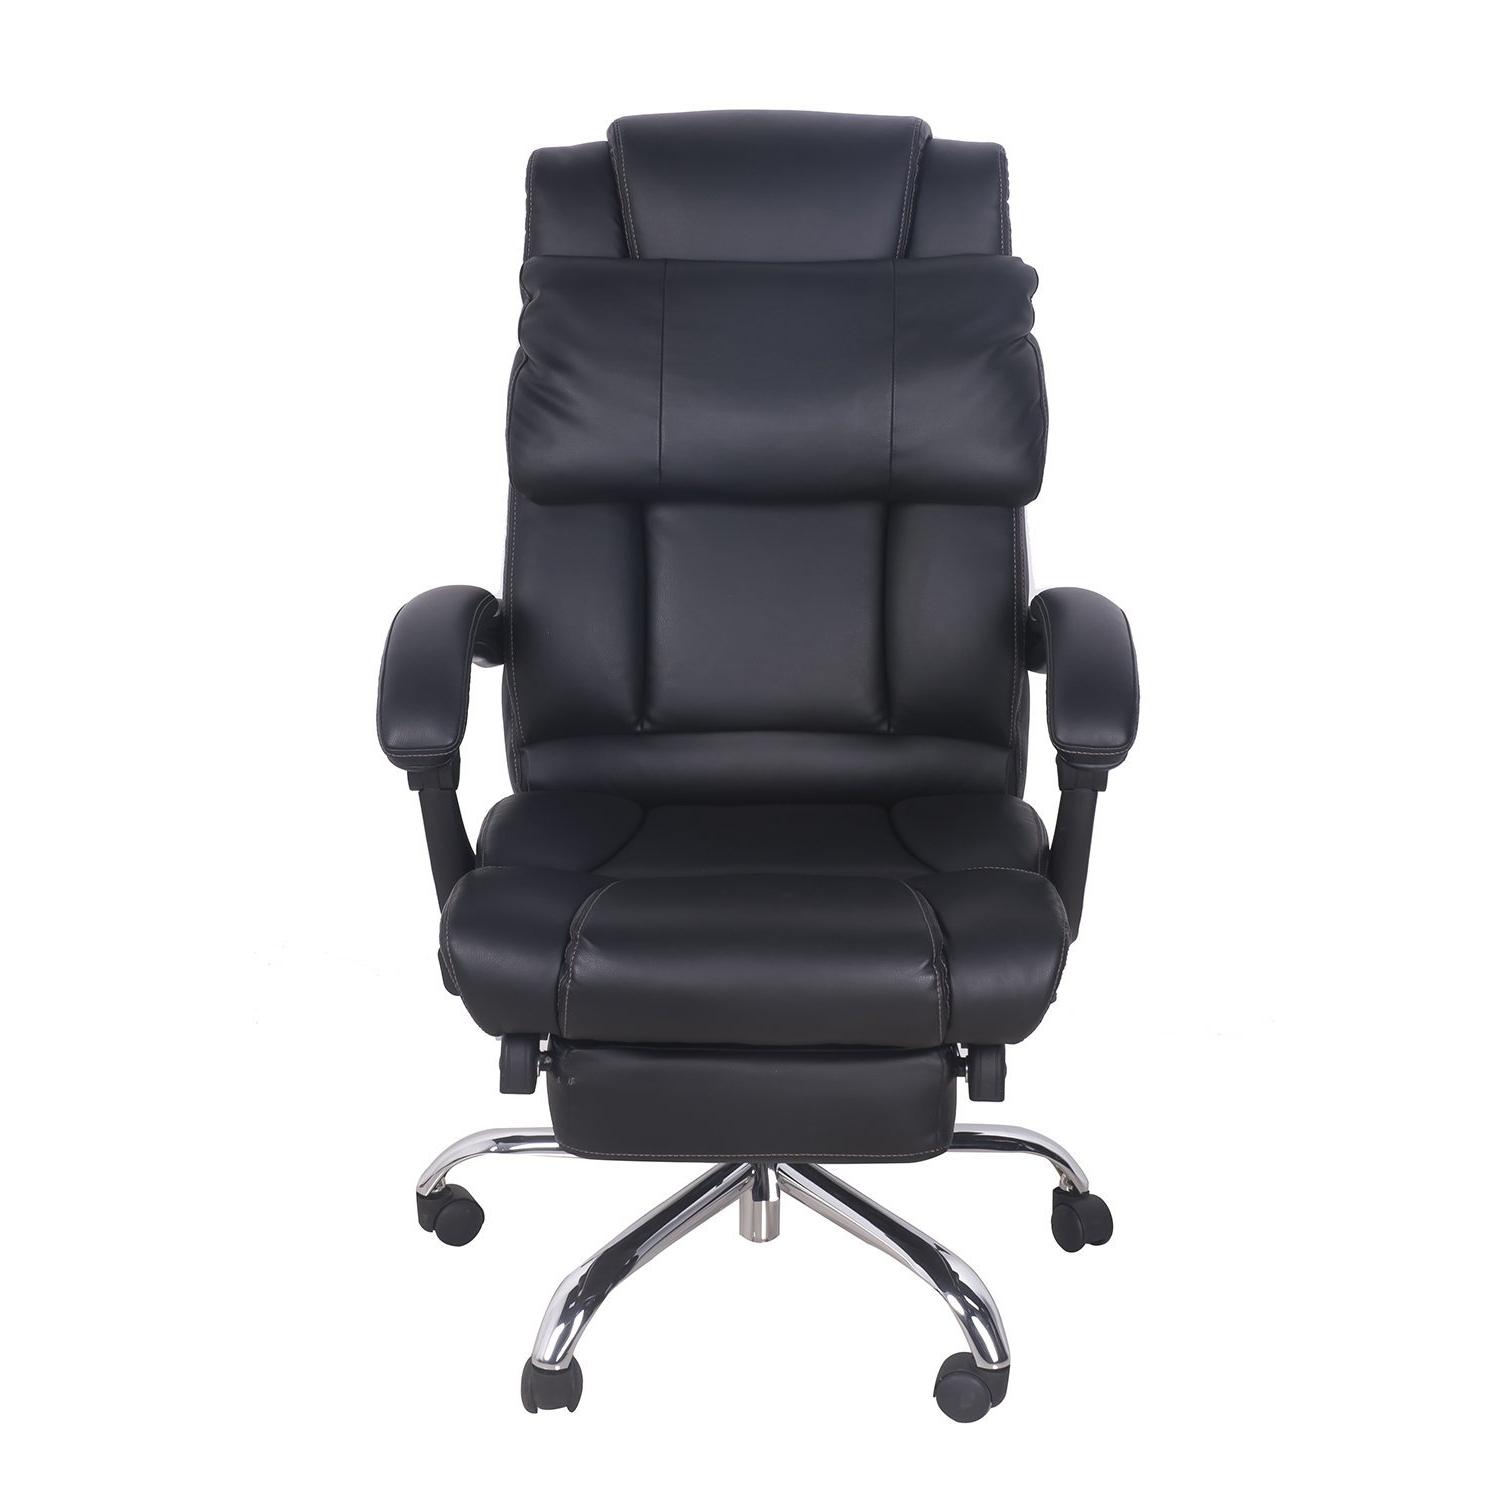 Updated Guide For 2018 Within Leather Executive Office Massage Chairs (View 9 of 20)